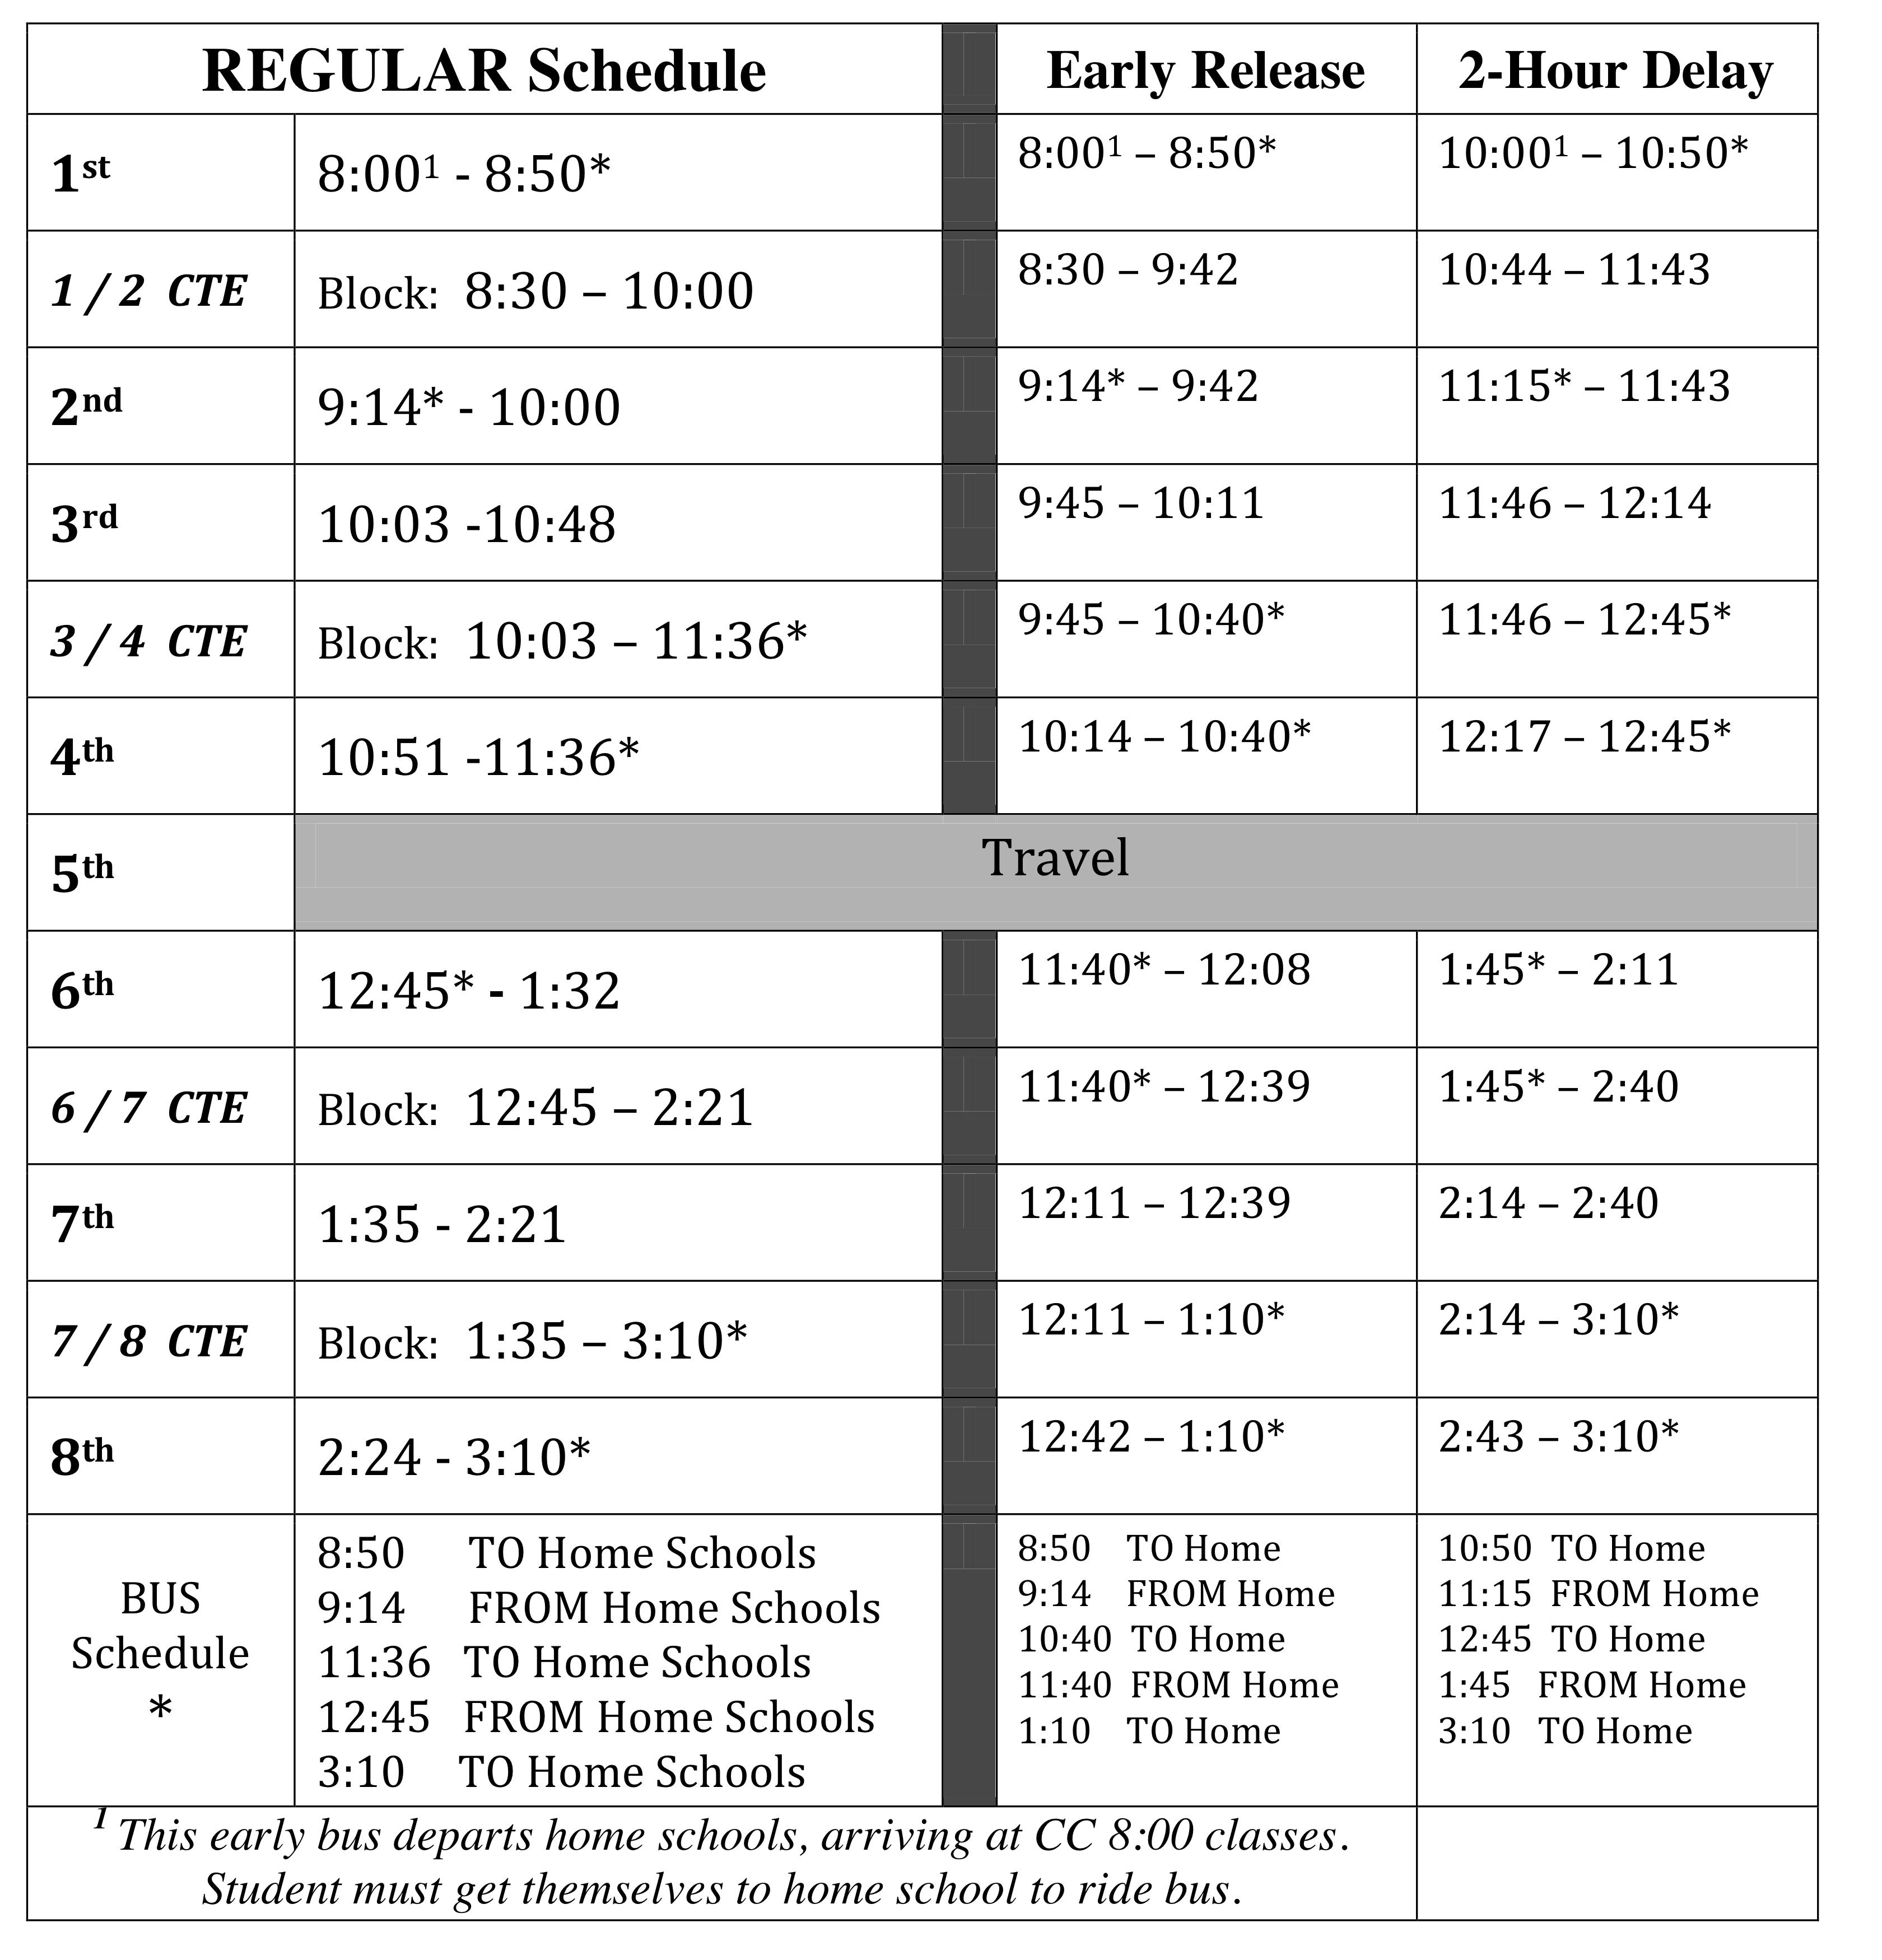 Student Handbook 2014 2015 Daily Schedule For Career Center